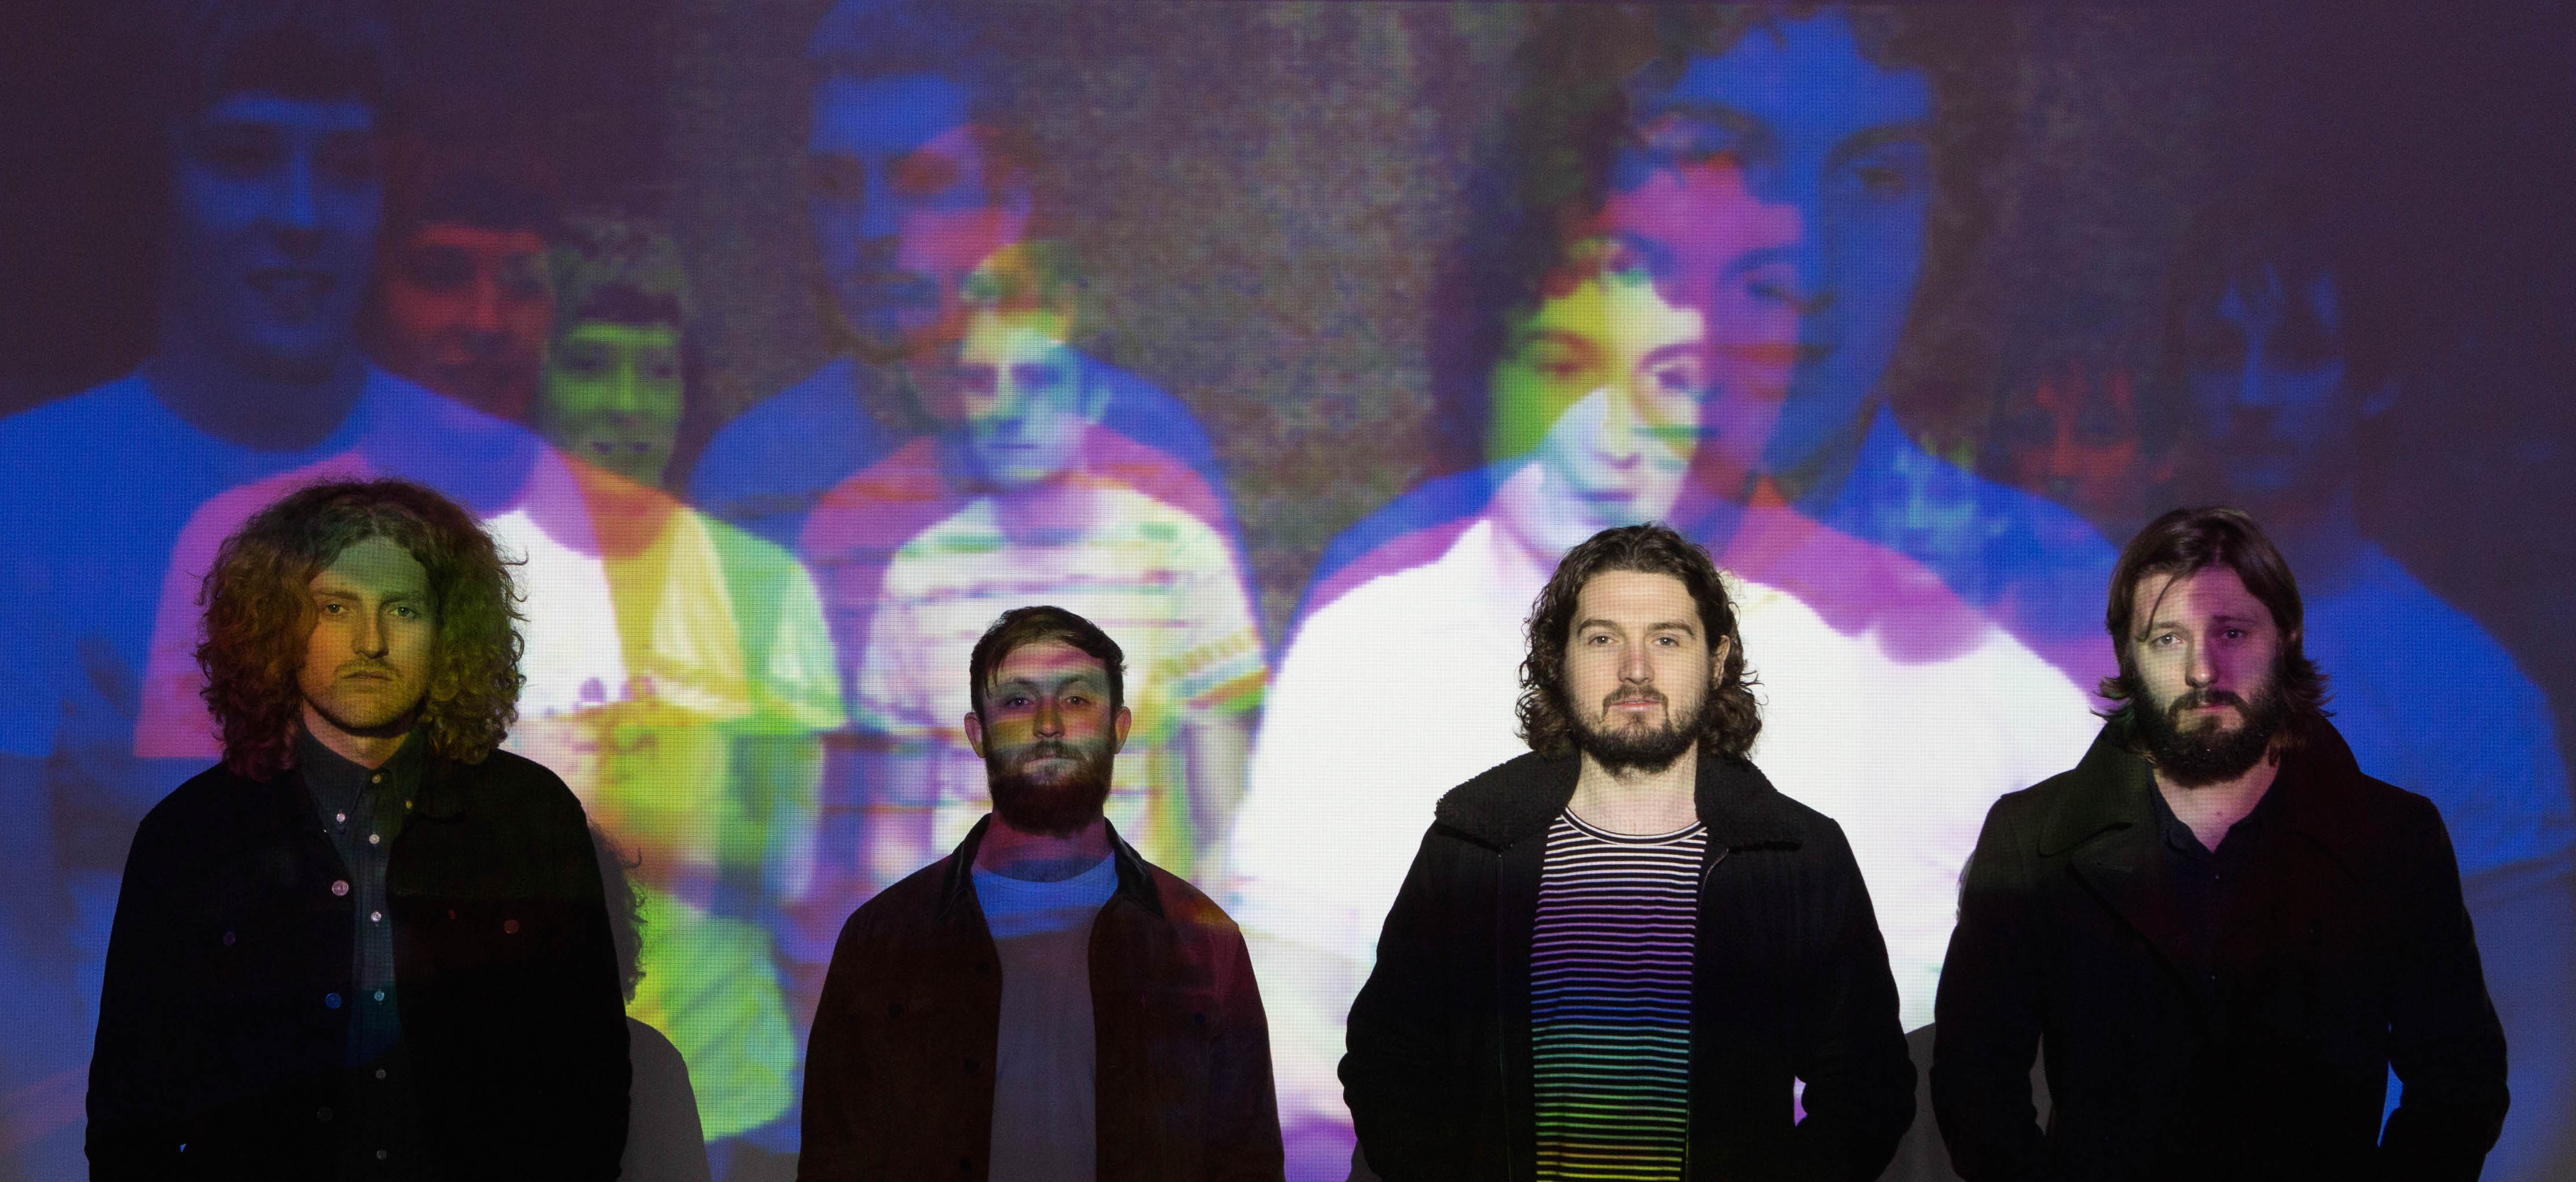 Well, Well, Well! Milburn are back and they're playing 4 sold-out hometown gigs. Send in the boys